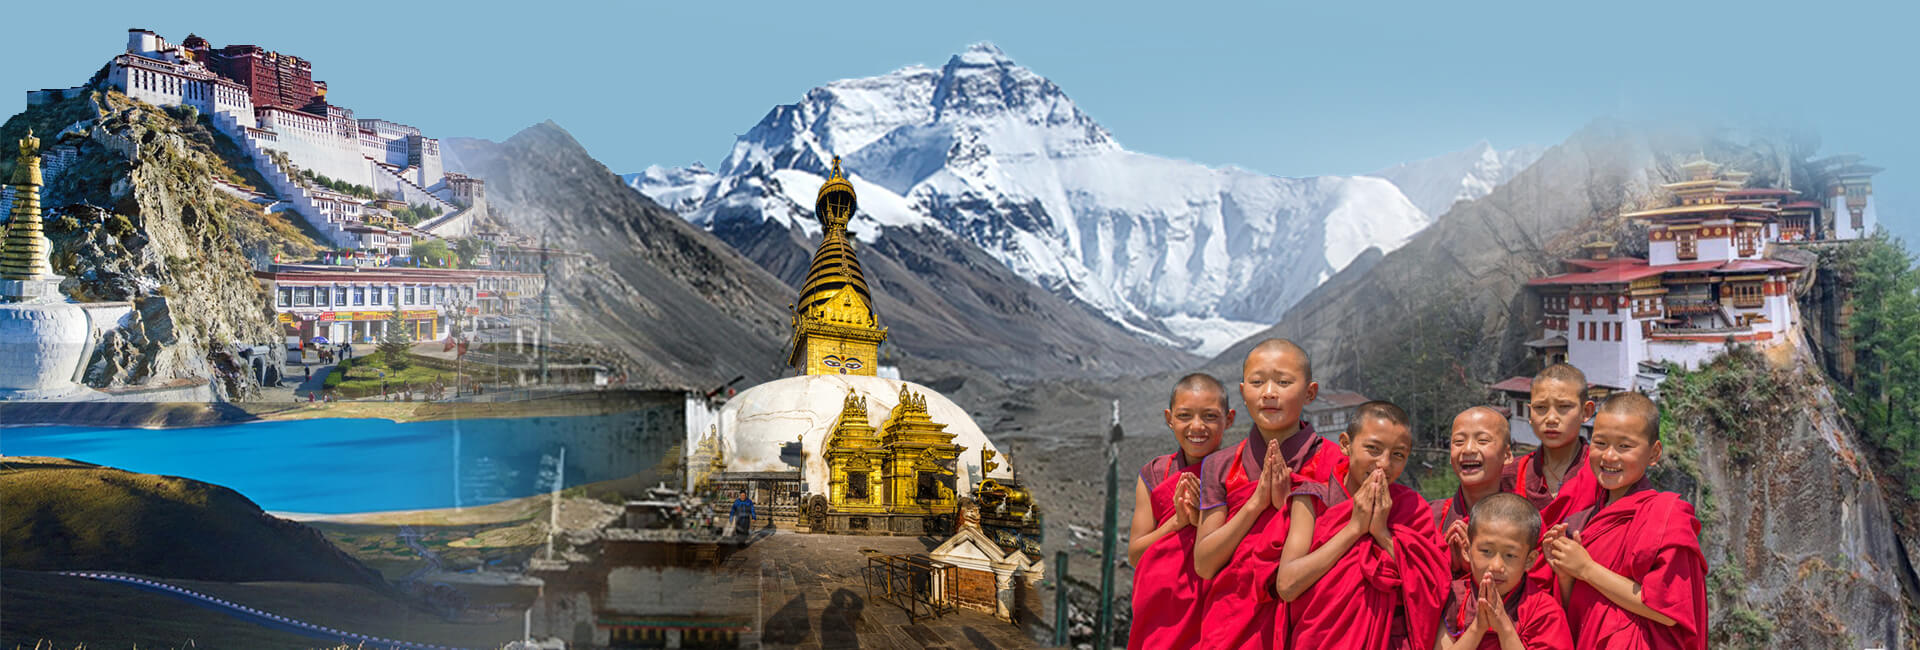 Tour Nepal Banners Cover Facebook Banners